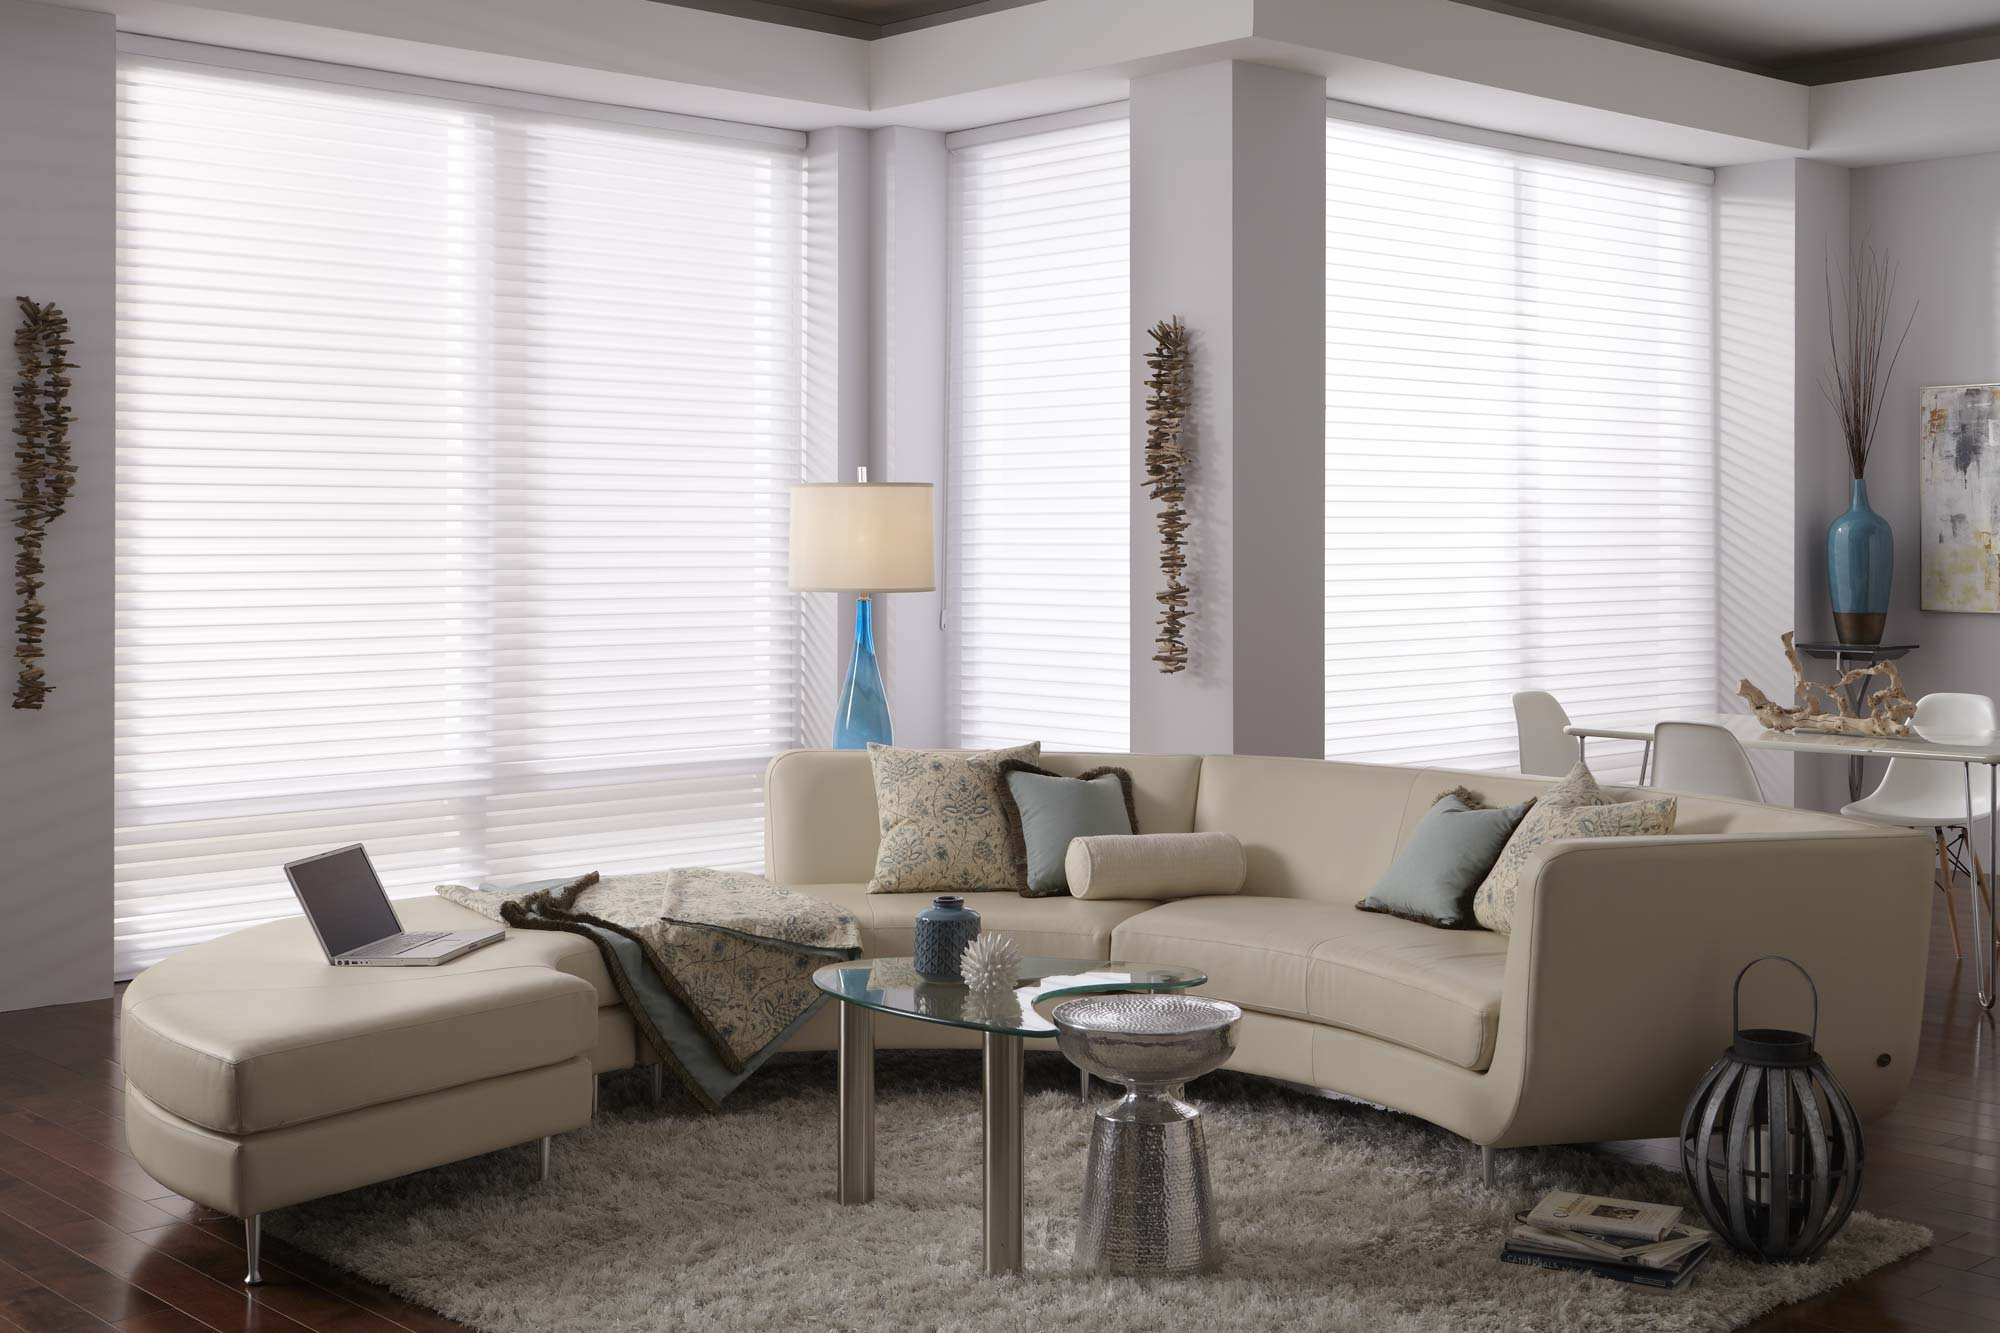 3 Large white Tenera® Sheer Shades hanging in a room with a large tan couch with custom Interior Masterpieces® pillows and throws